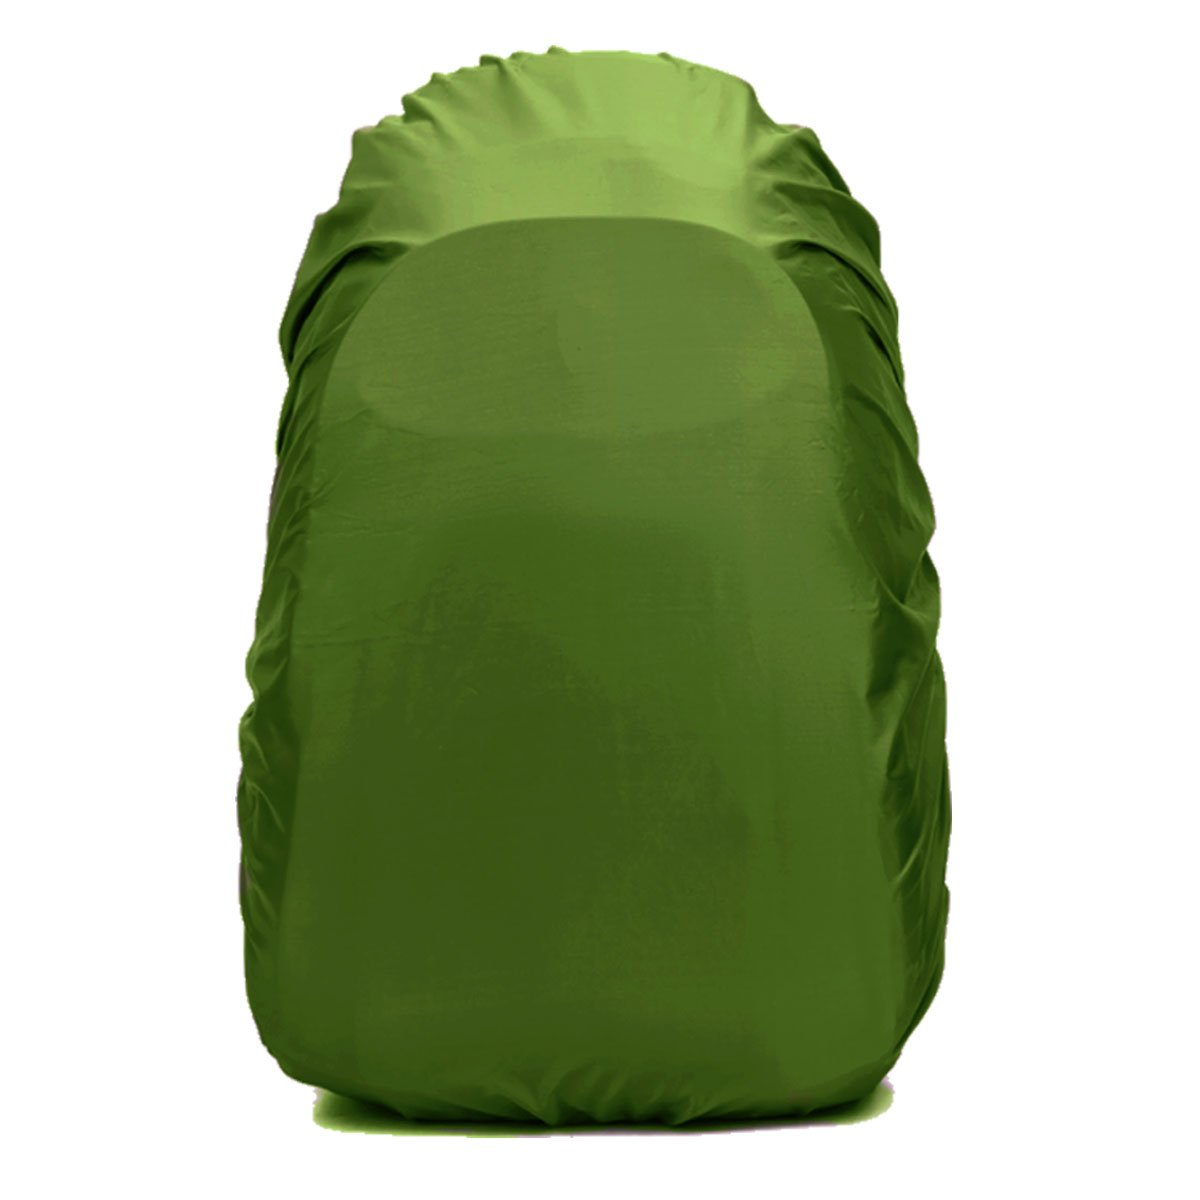 Frelaxy Waterproof Backpack Rain Cover for (15-90L), Upgraded Design & Silver Coated, for Hiking, Camping, Traveling, Outdoor Activities (Army Green, XL) by Frelaxy (Image #2)